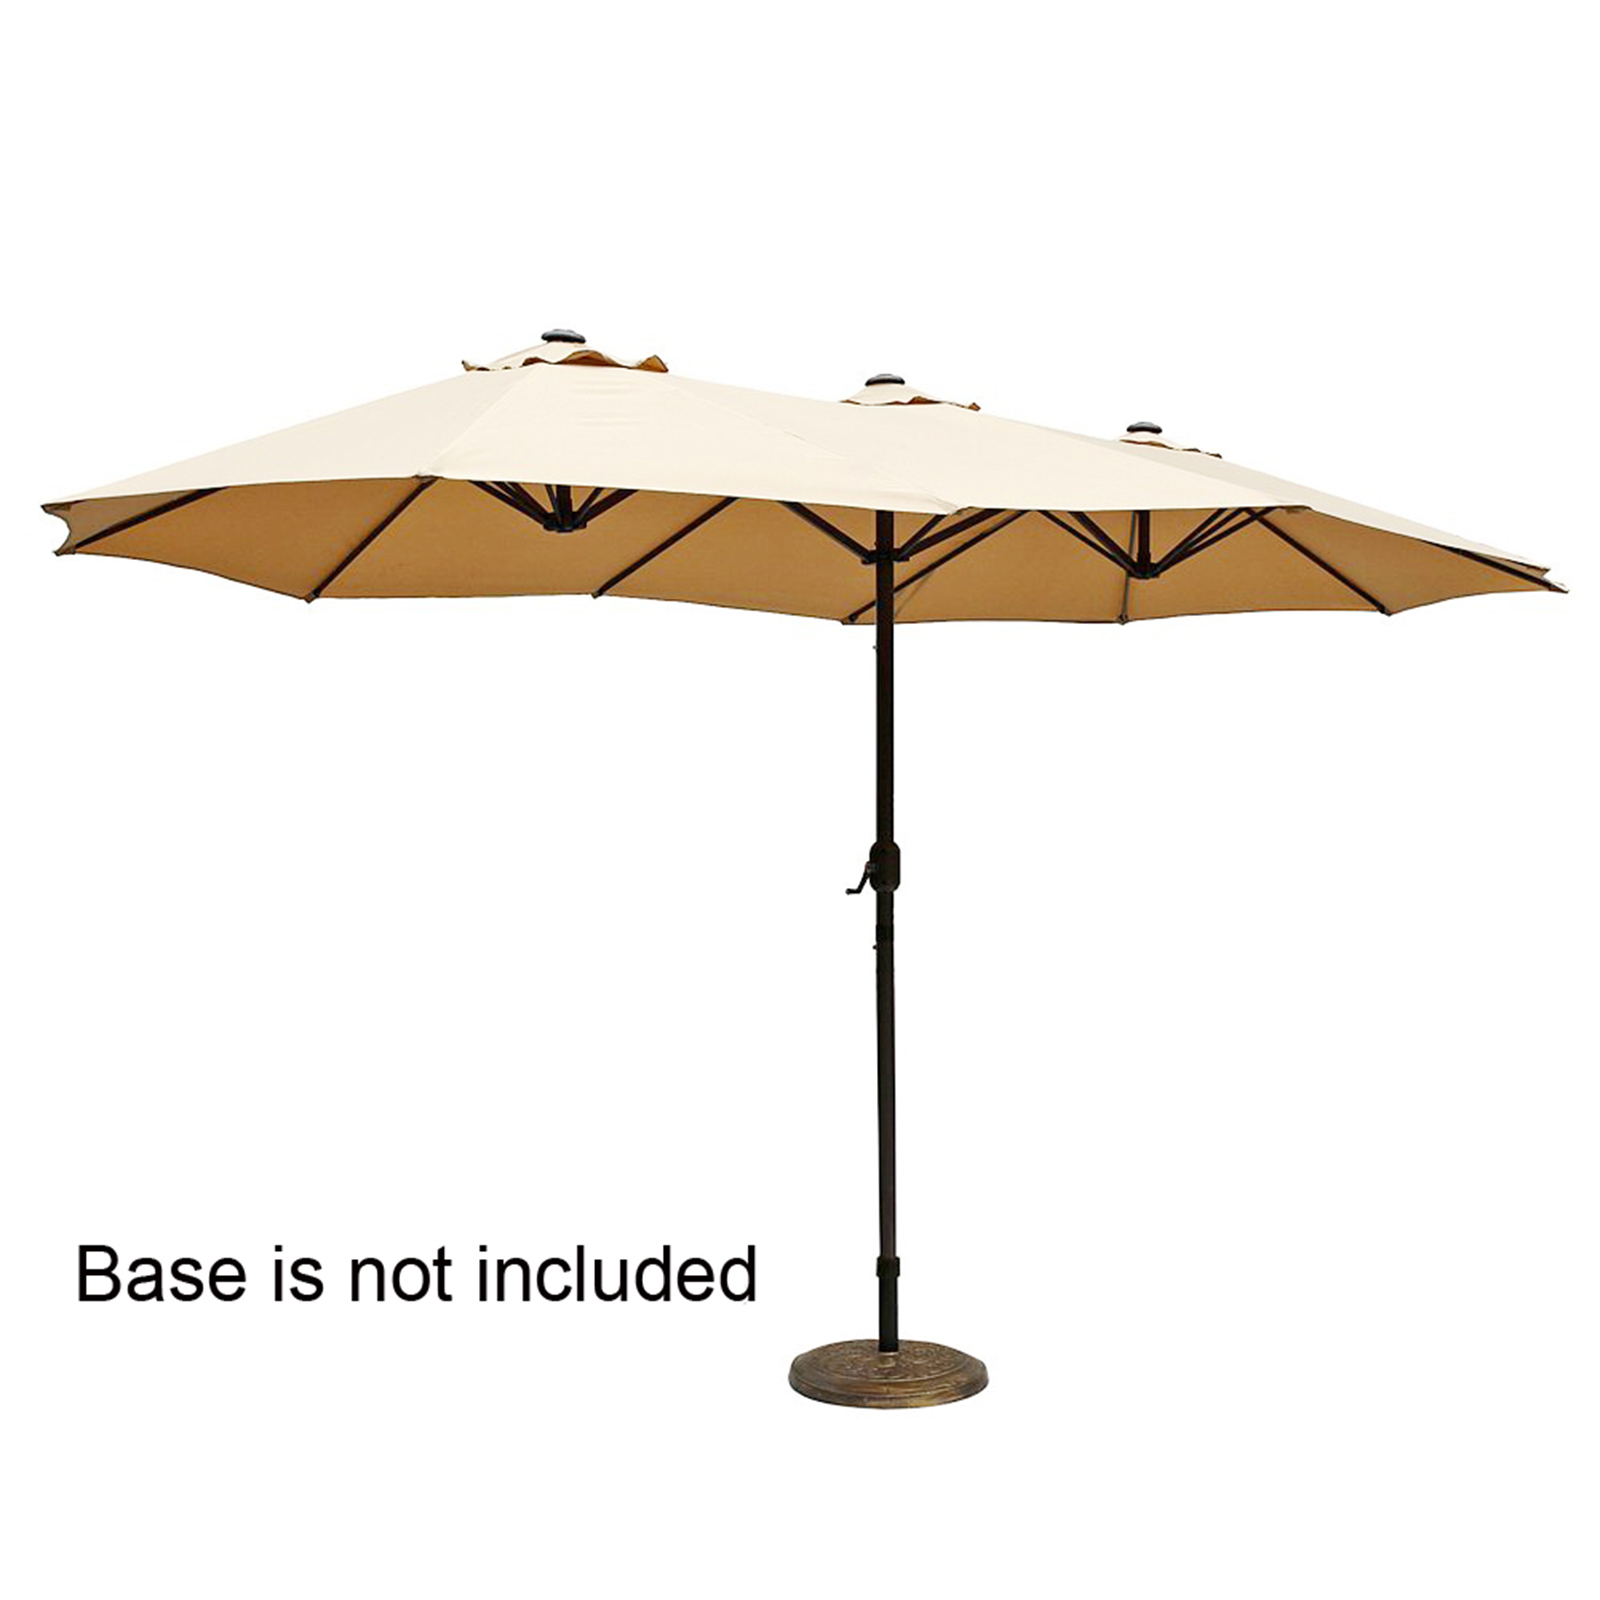 15 Large Offset Patio Umbrella Folding Outdoor Beach Double Sided